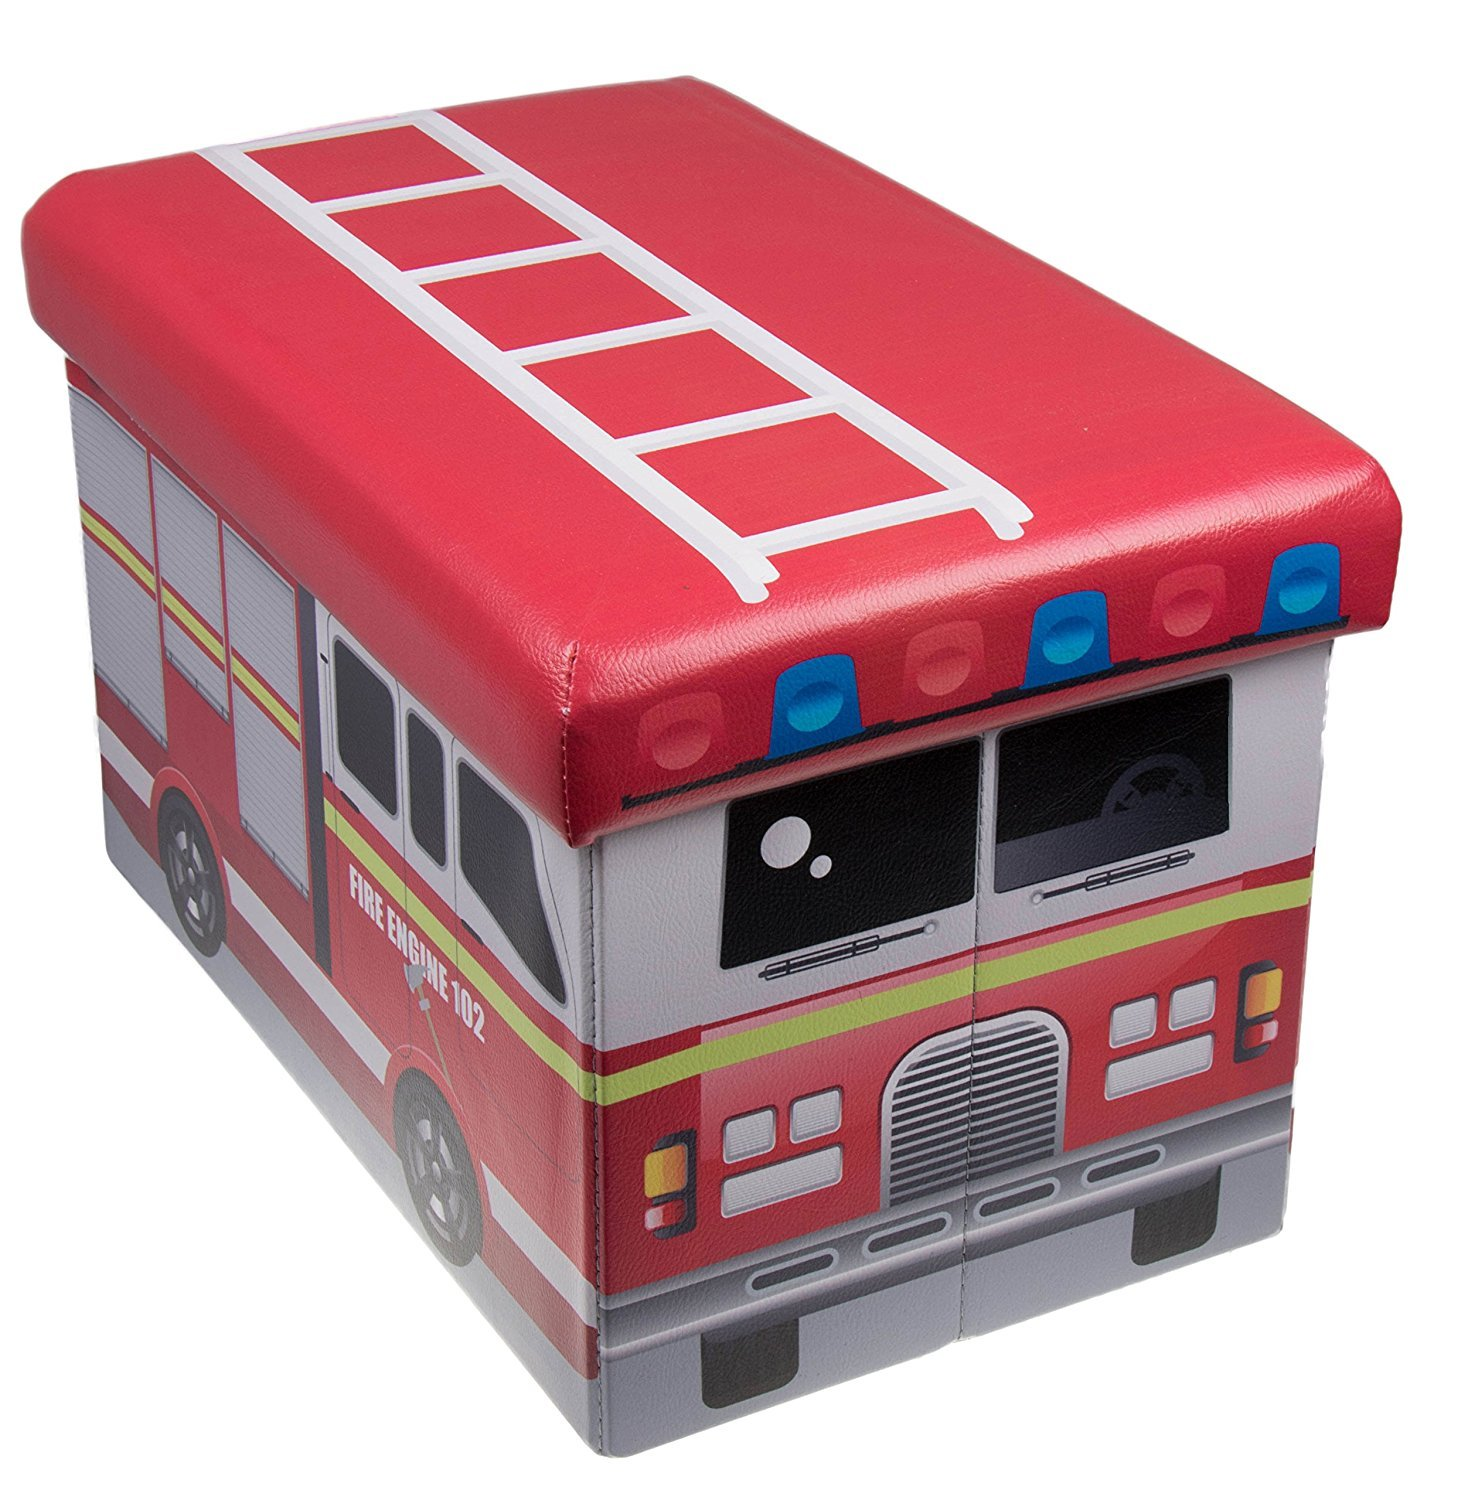 Fire Truck Collapsible Storage Organizer by Clever Creations | Firetruck Storage Box Folding Storage Ottoman for Your Bedroom | Perfect Size Storage Chest for Books, Shoes & Games by Clever Creations